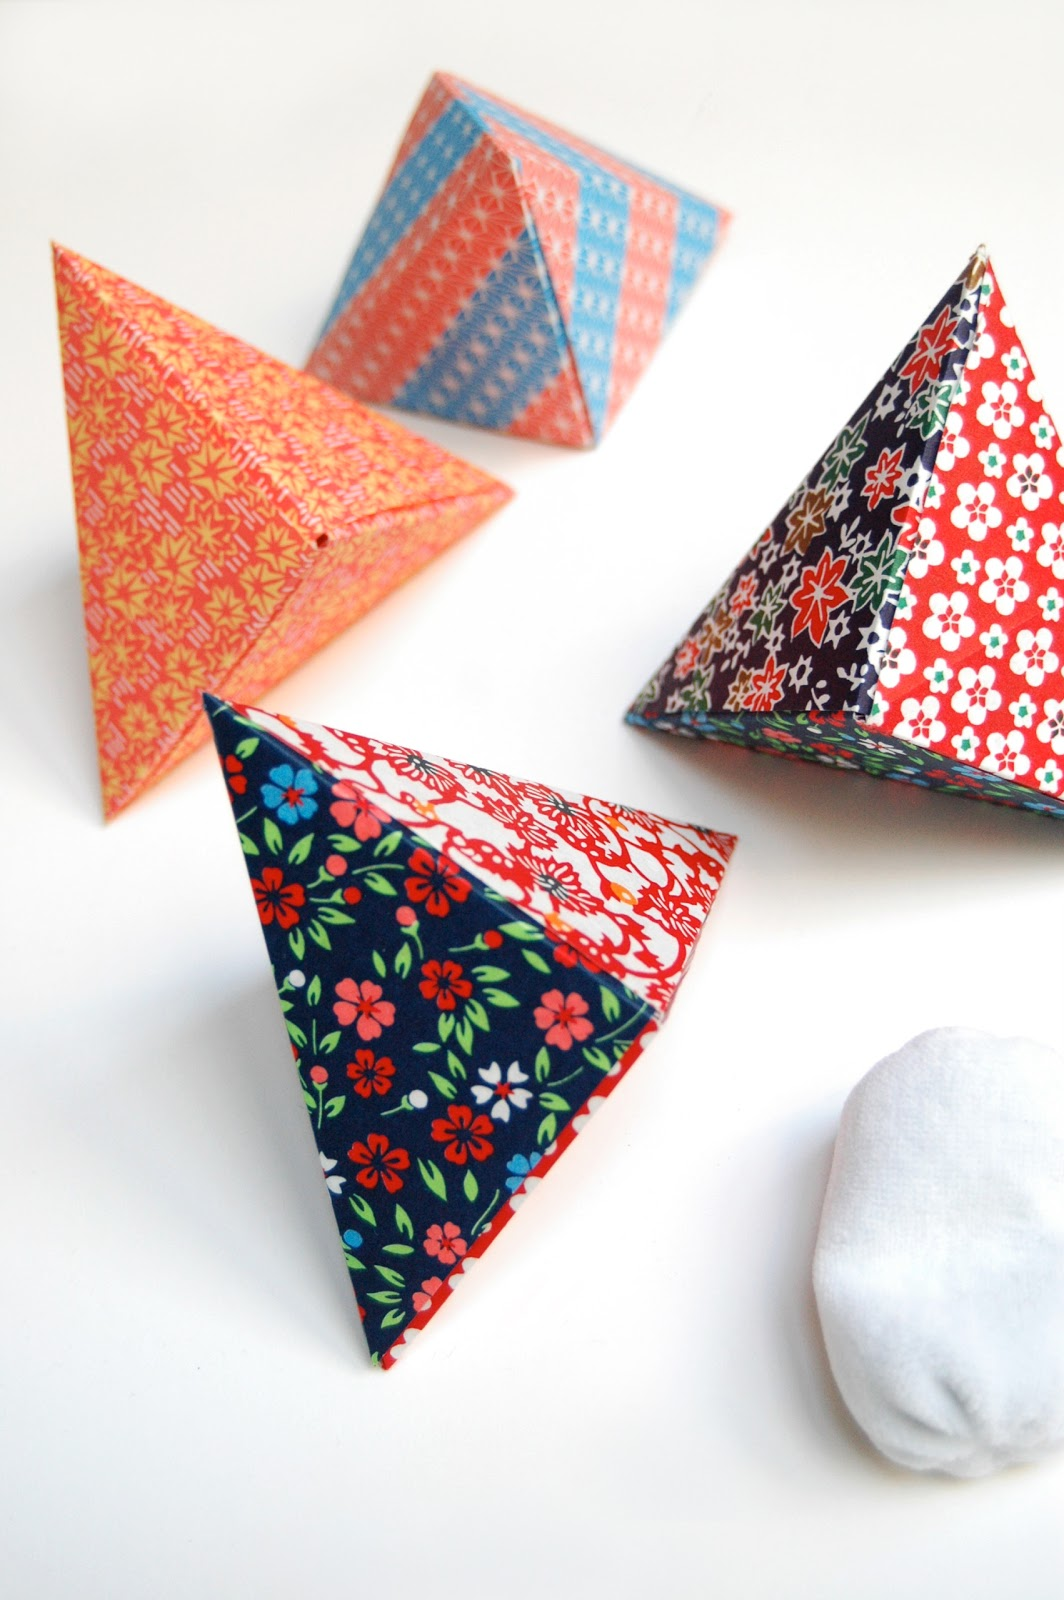 Småkompisar: Make an Origami Box for Small Gifts like ... - photo#19